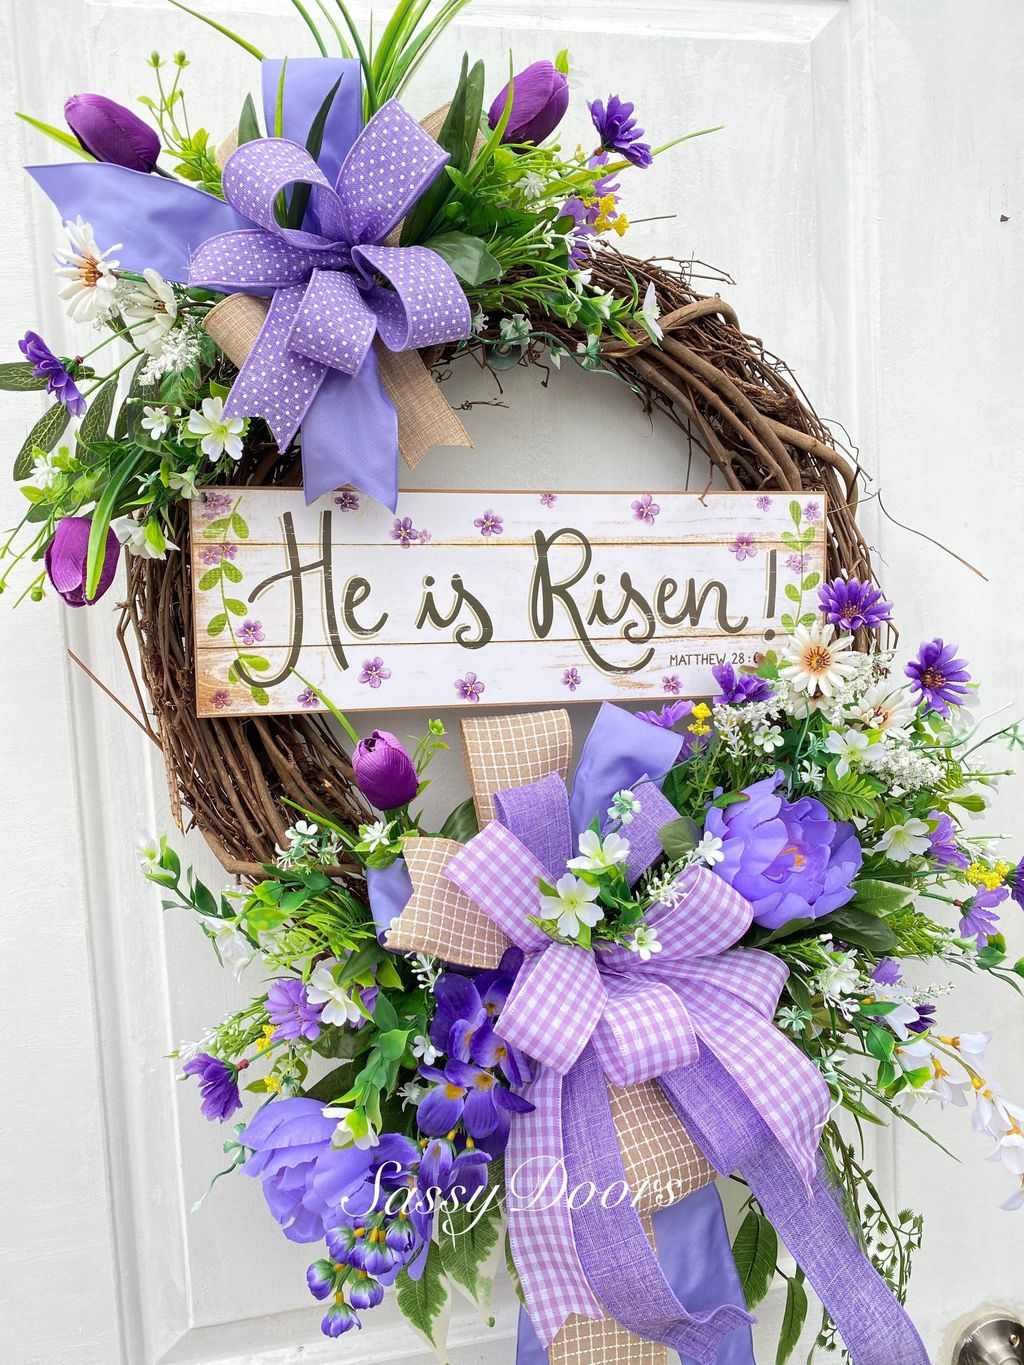 Inspiring Spring Door Wreaths For Your Home Decoration 24